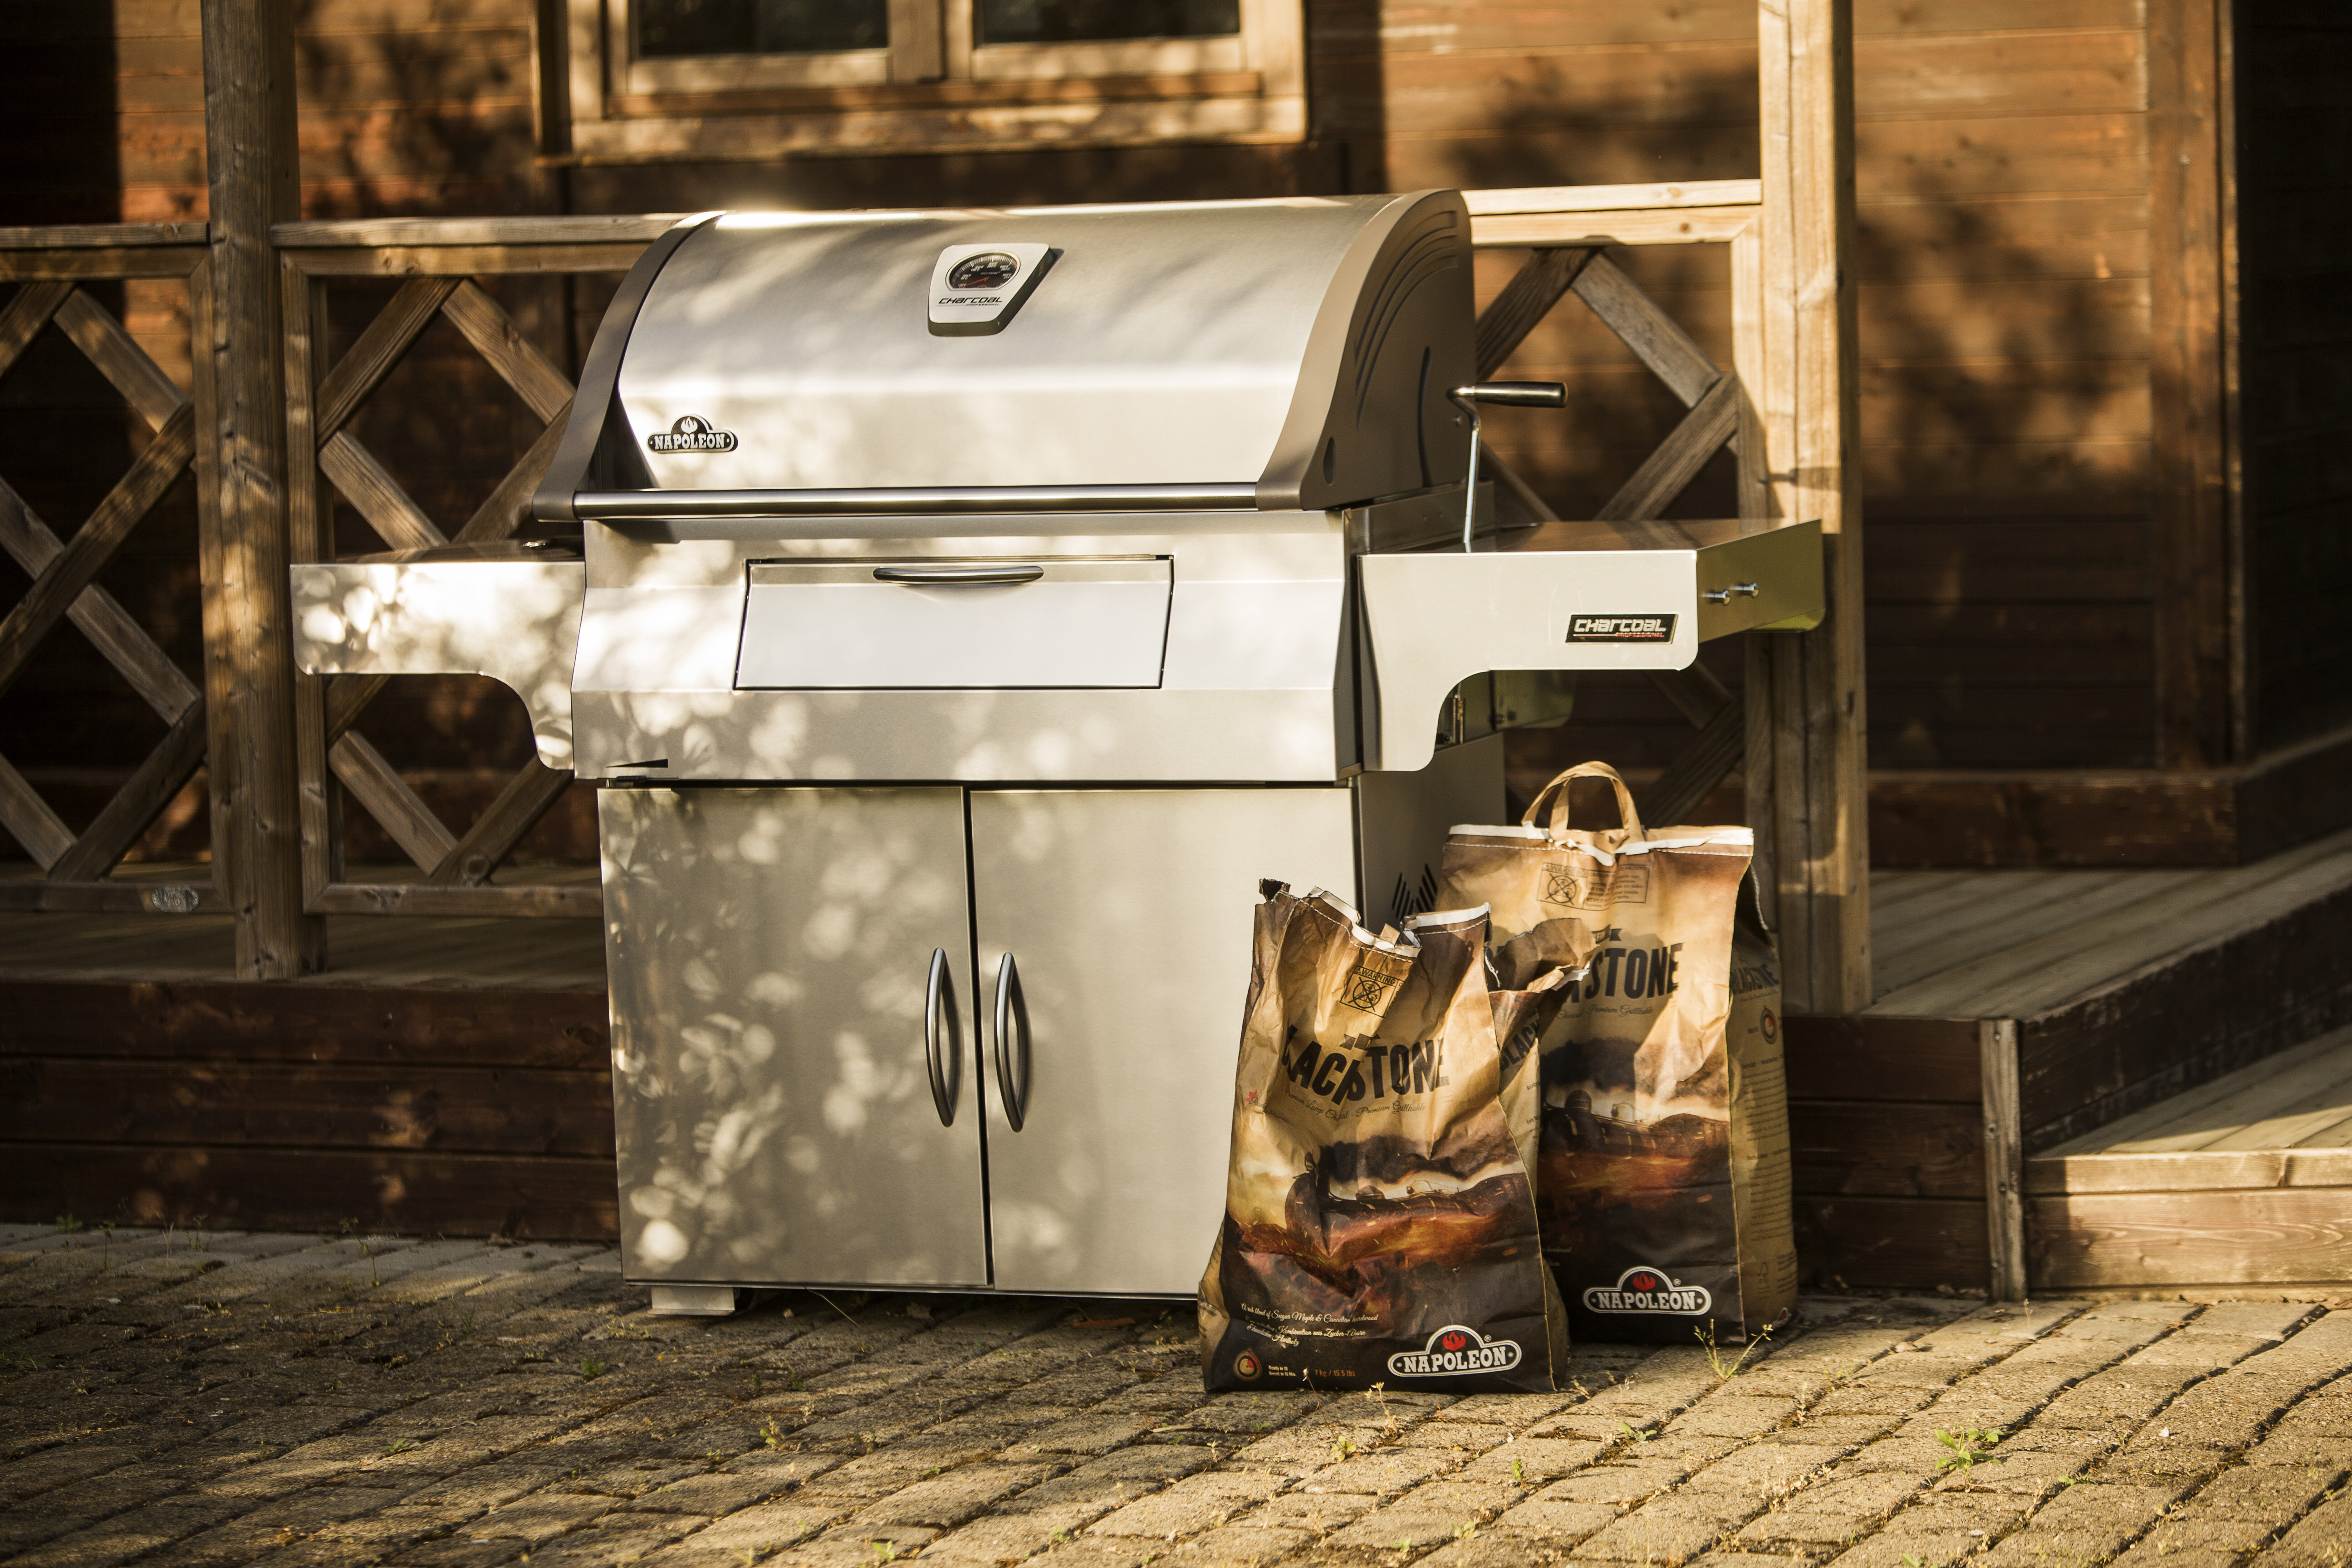 Napoleon Charcoal Professional Edelstahl Holzkohlegrill Pro605css : Bbq profi napoleon mirage m605rbcss eds